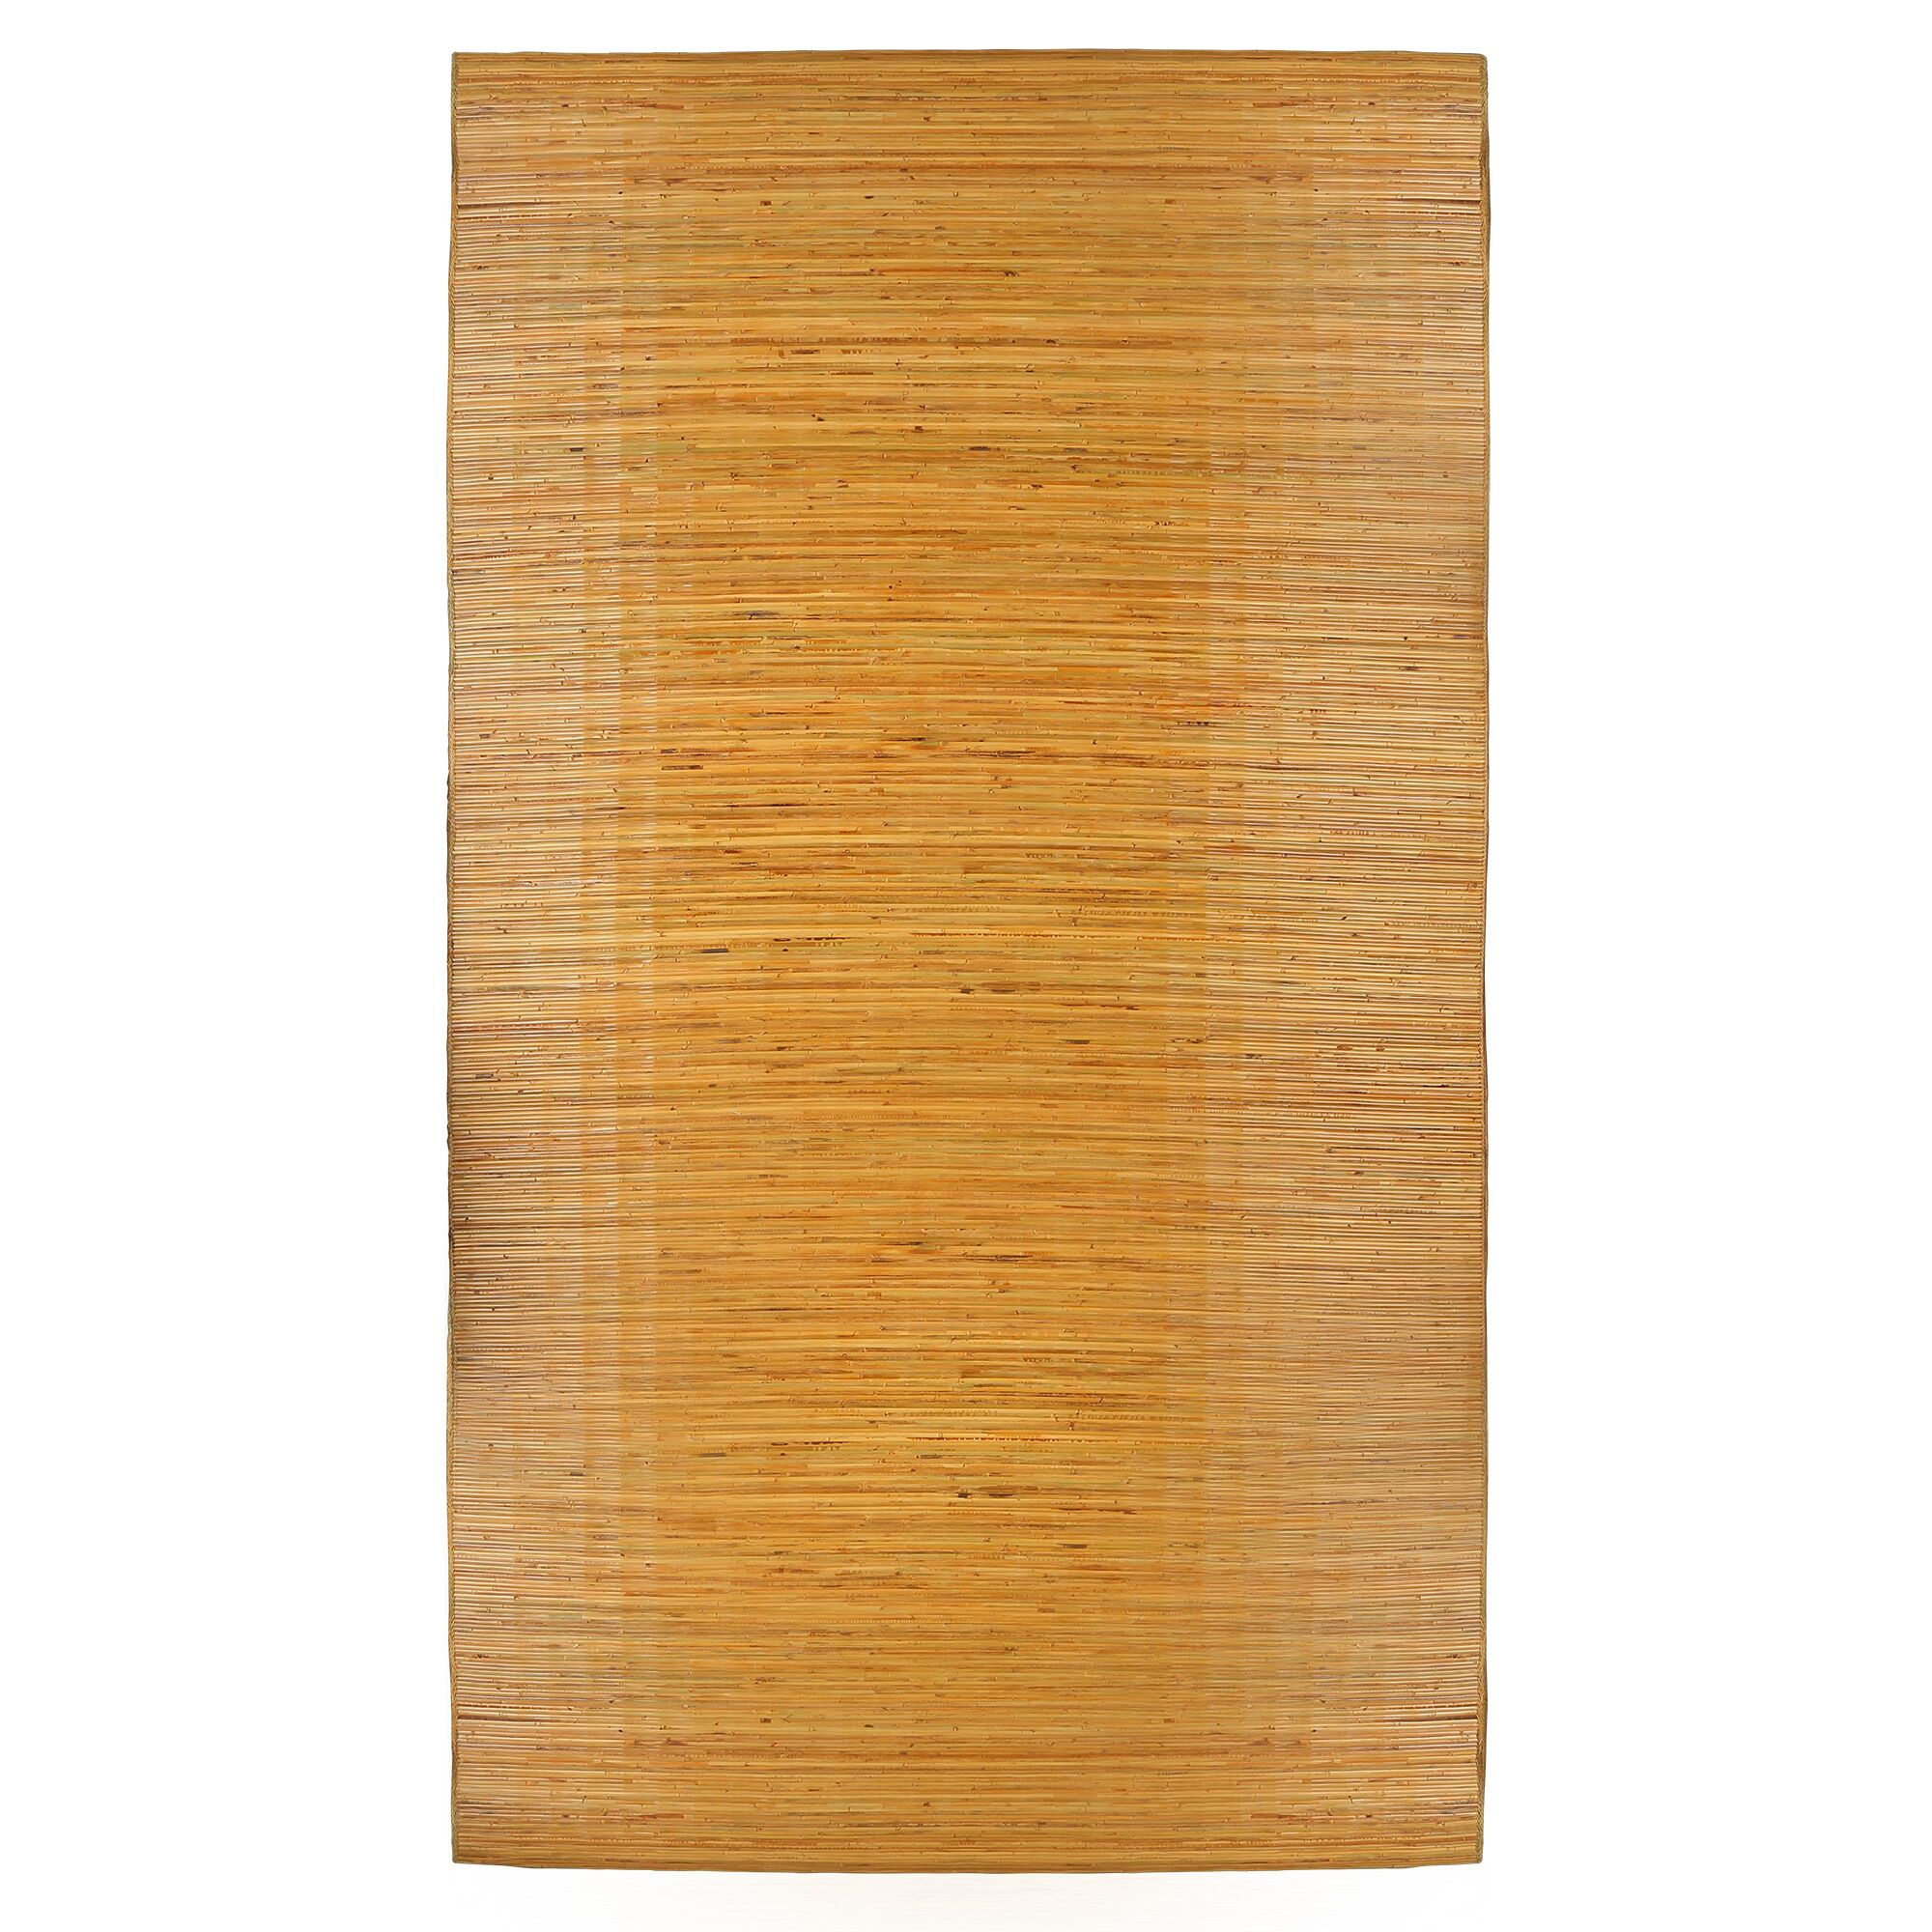 Arvilla Bali Hand-Woven Brown Area Rug Size: 5' x 8'